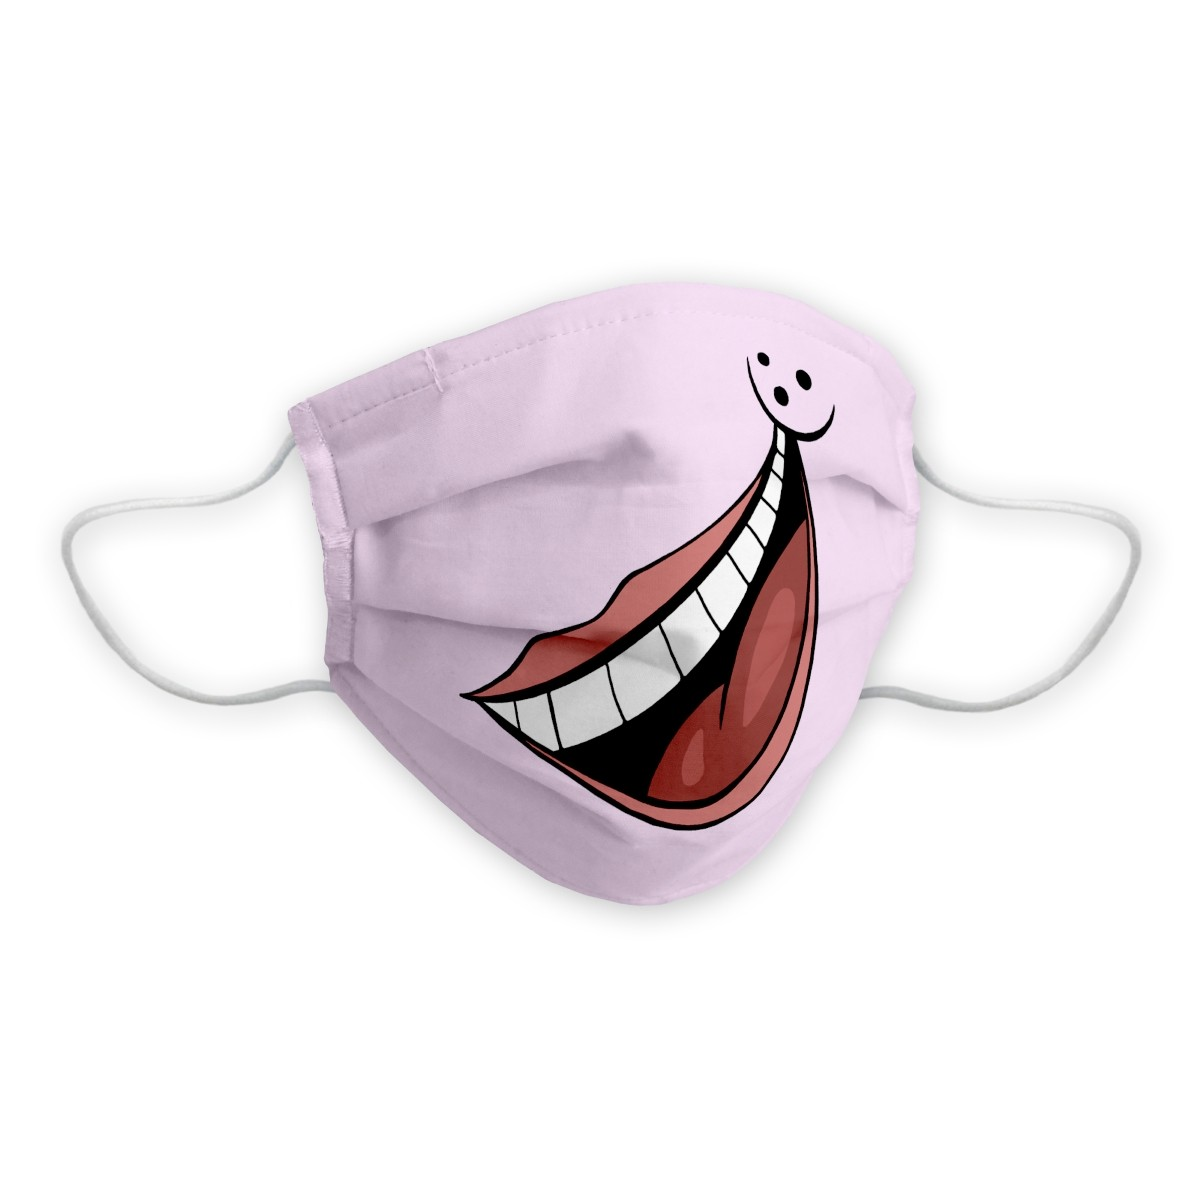 Big Smile certified child social mask with smile design